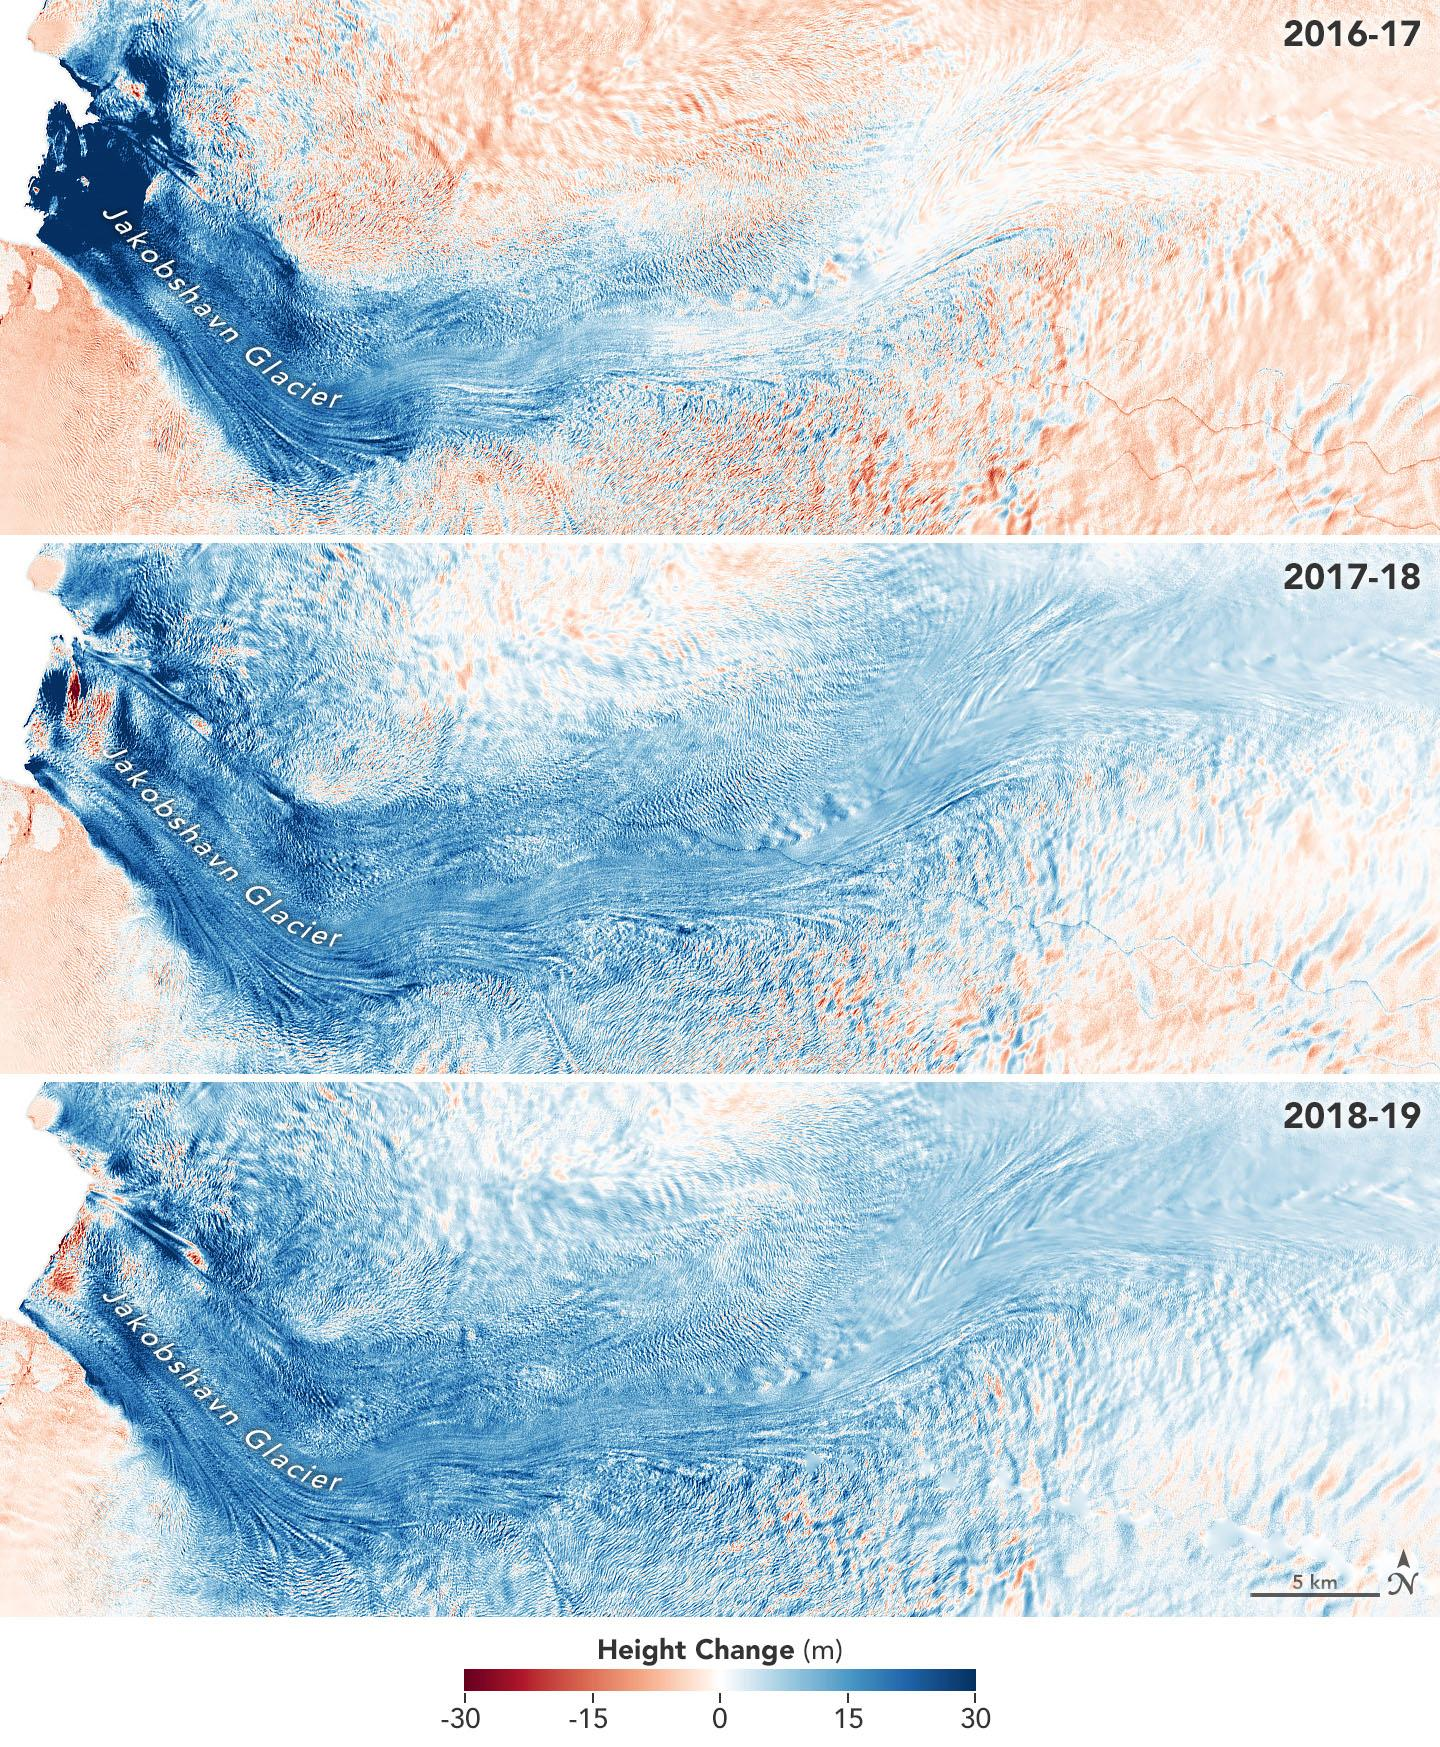 These images from NASAs Oceans Melting Greenland (OMG) mission, show the mass Greenlands Jakobshavn Glacier has gained from 2016-17, 2017-18 and 2018-19.